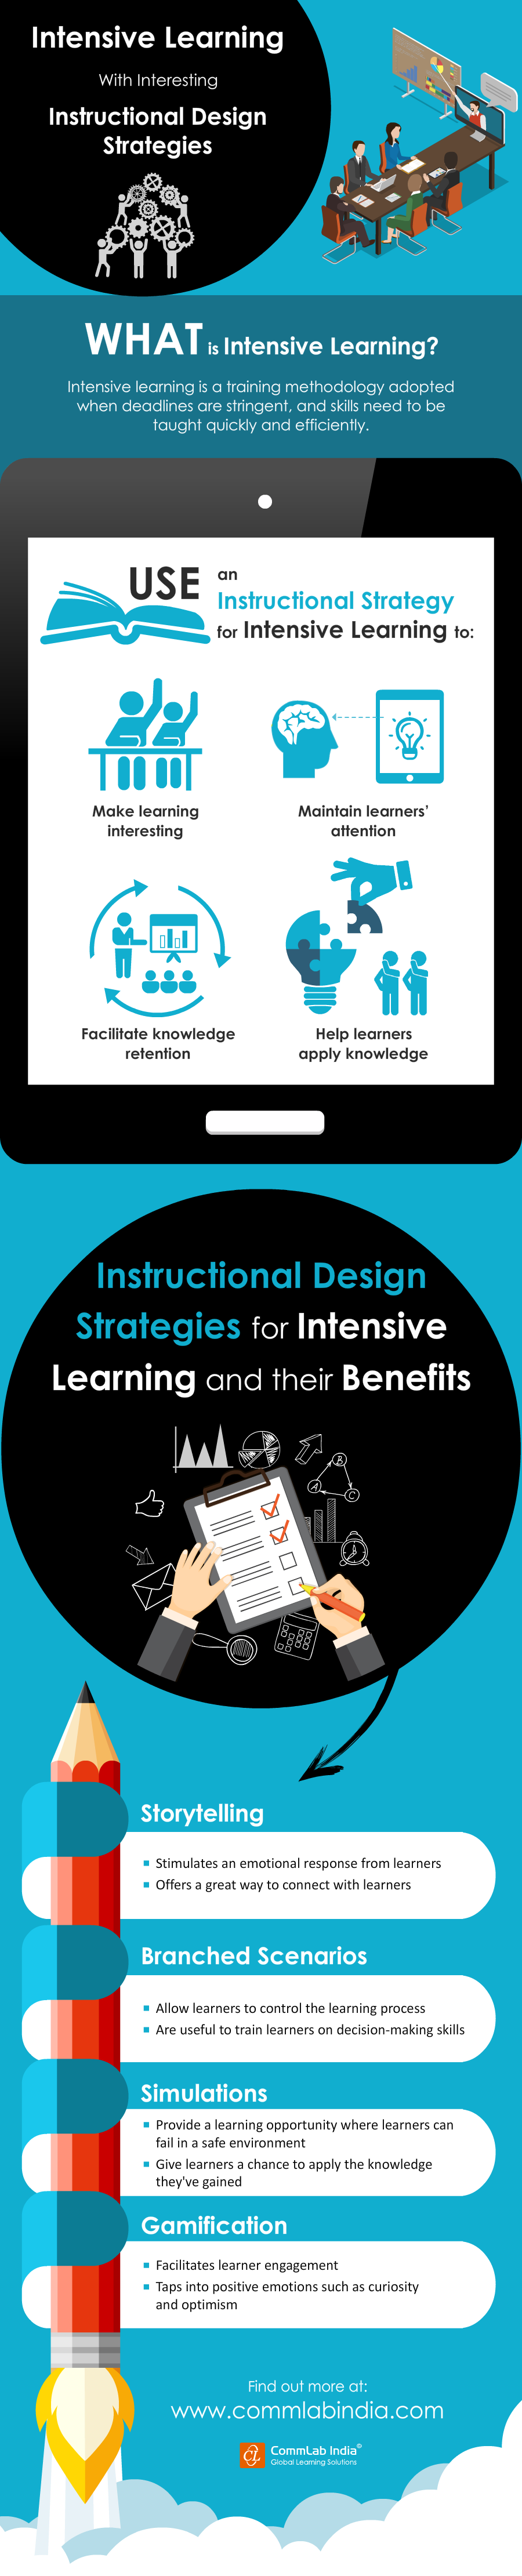 Intensive Learning with Interesting Instructional Design Strategies